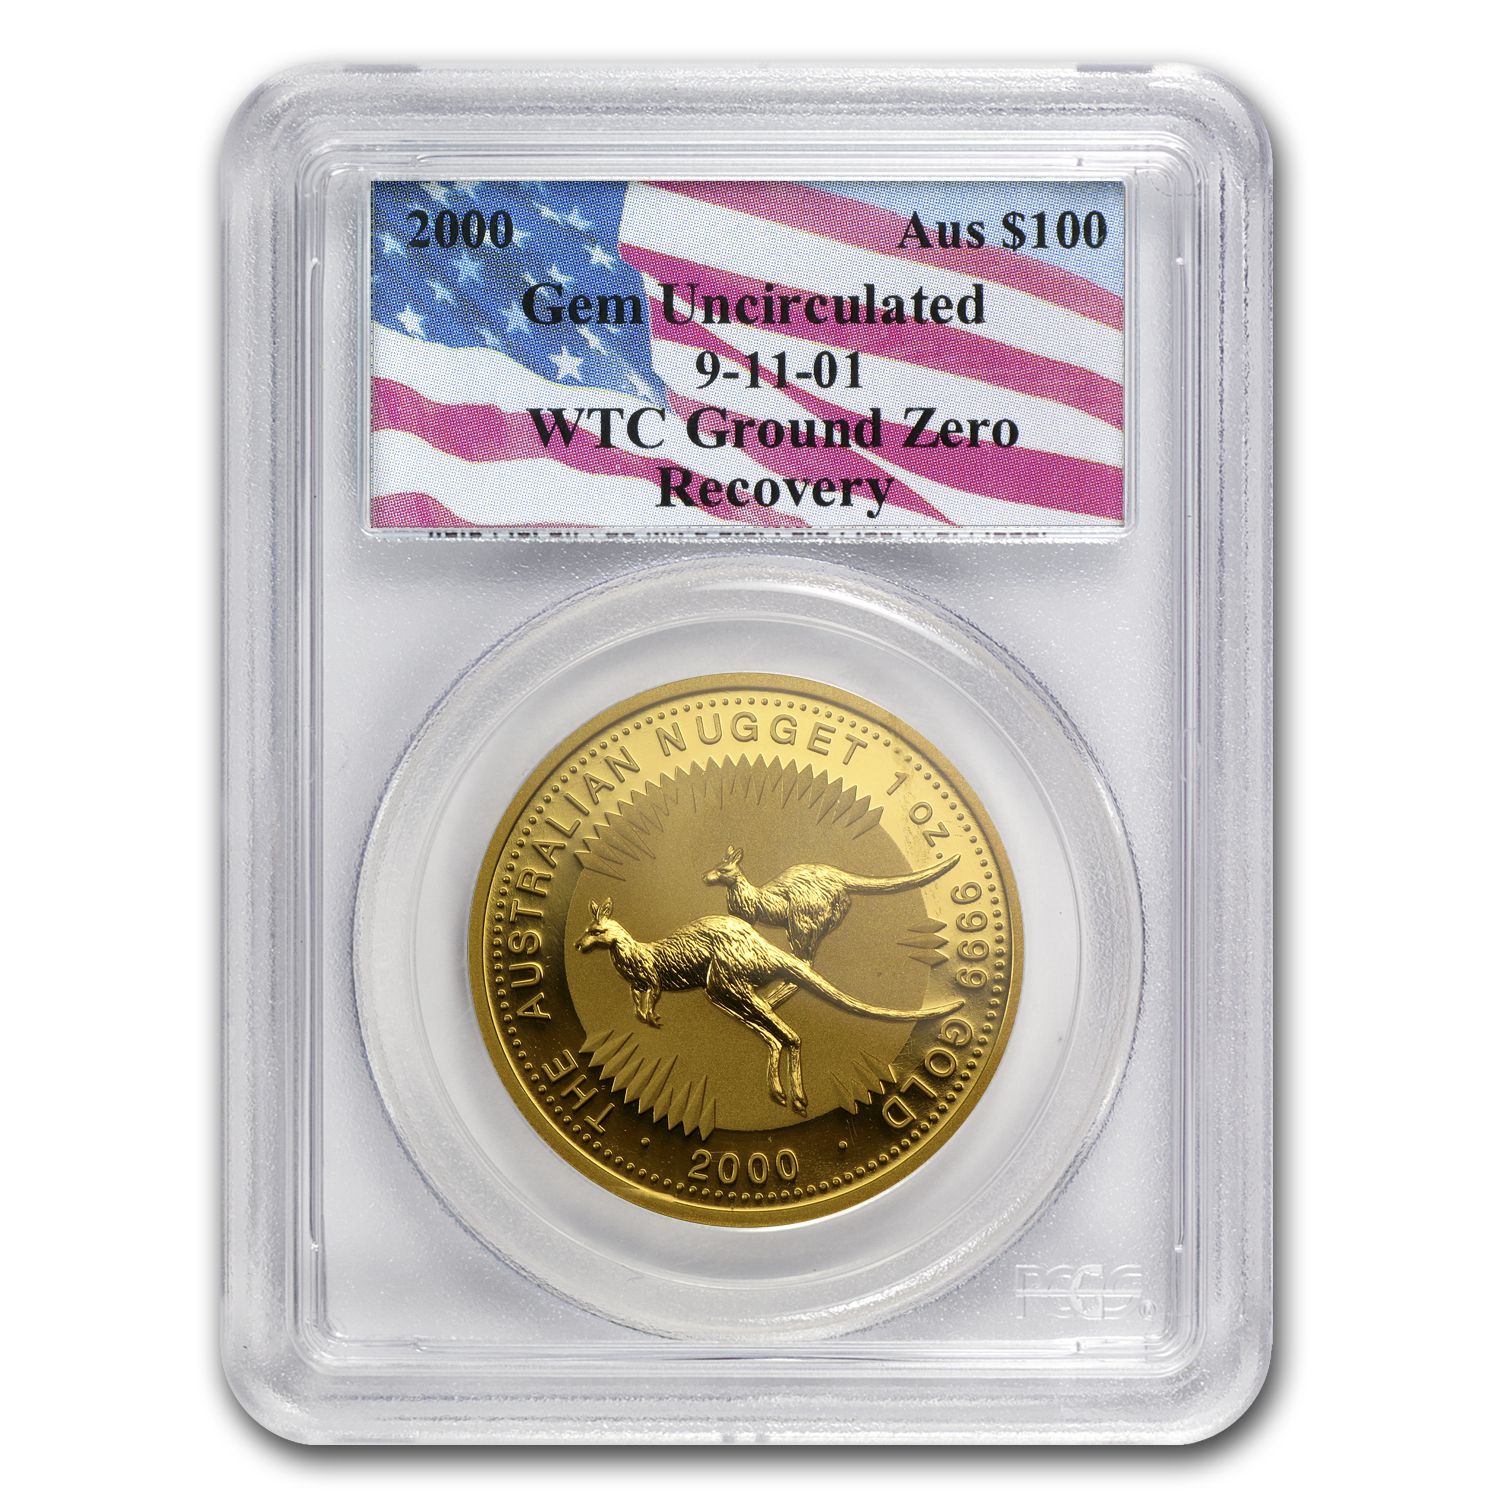 2000 Australia 1 oz Gold Nugget Gem Unc PCGS (WTC Ground Zero)